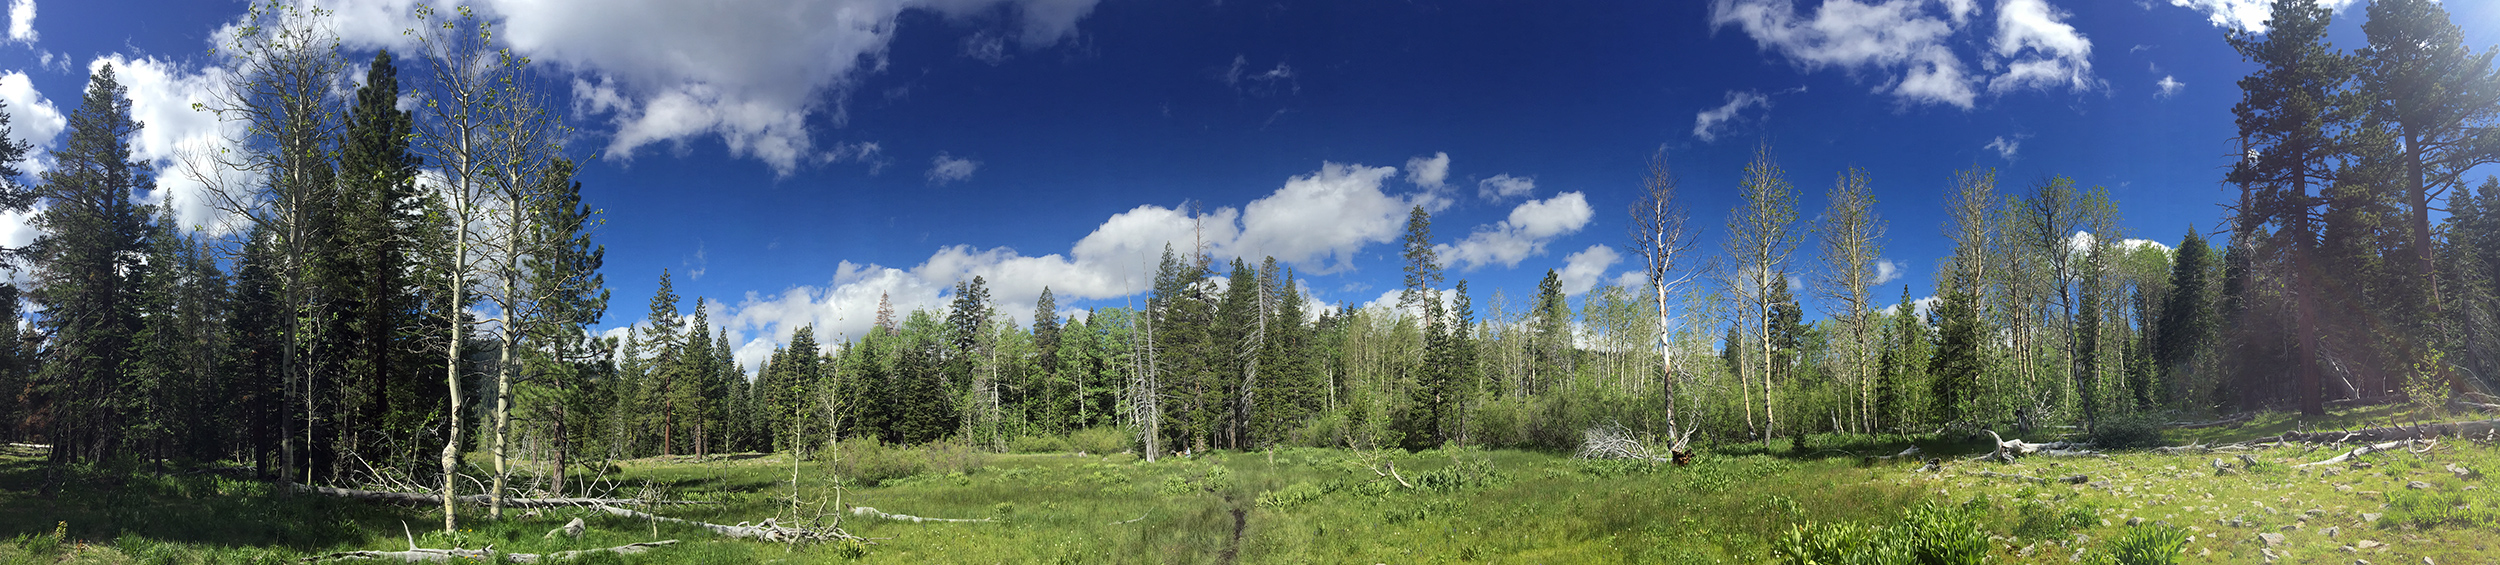 Page Meadows, Lake Tahoe